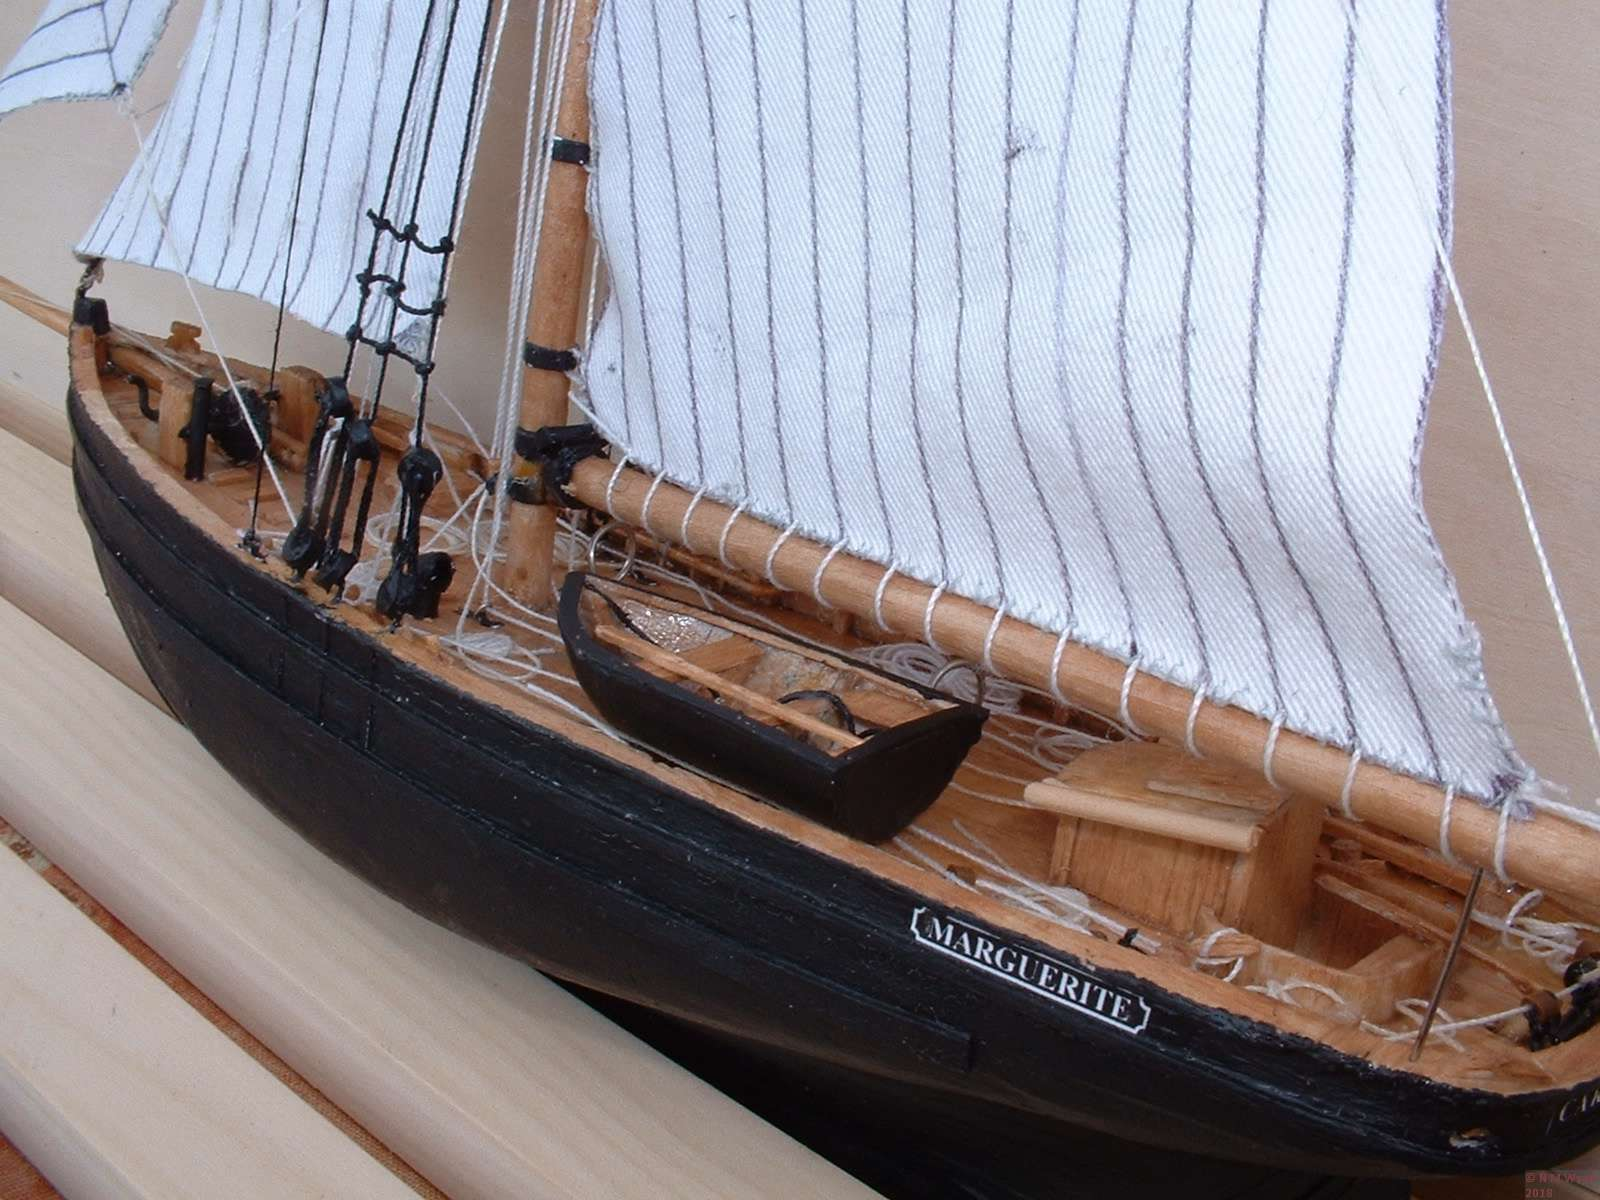 Close up of Pilot Cutter Model